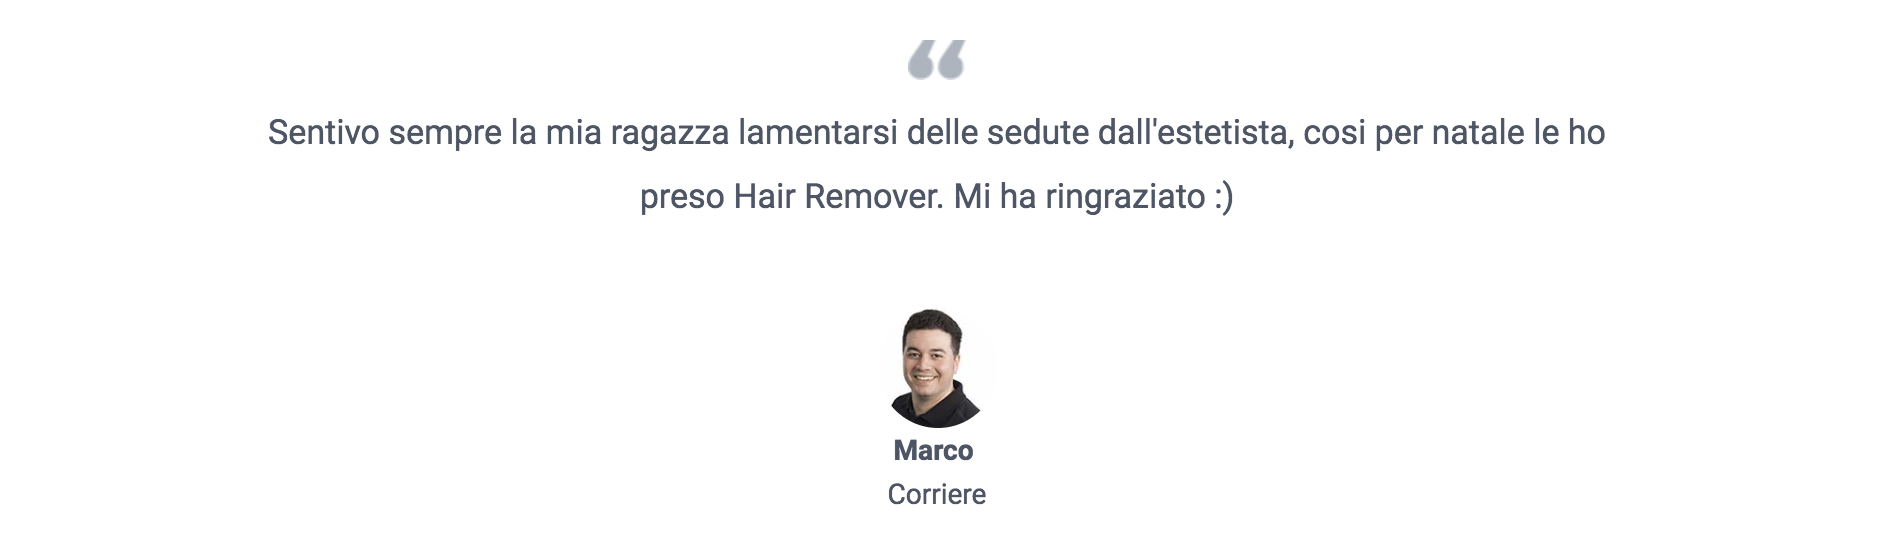 hair remover recensione 1